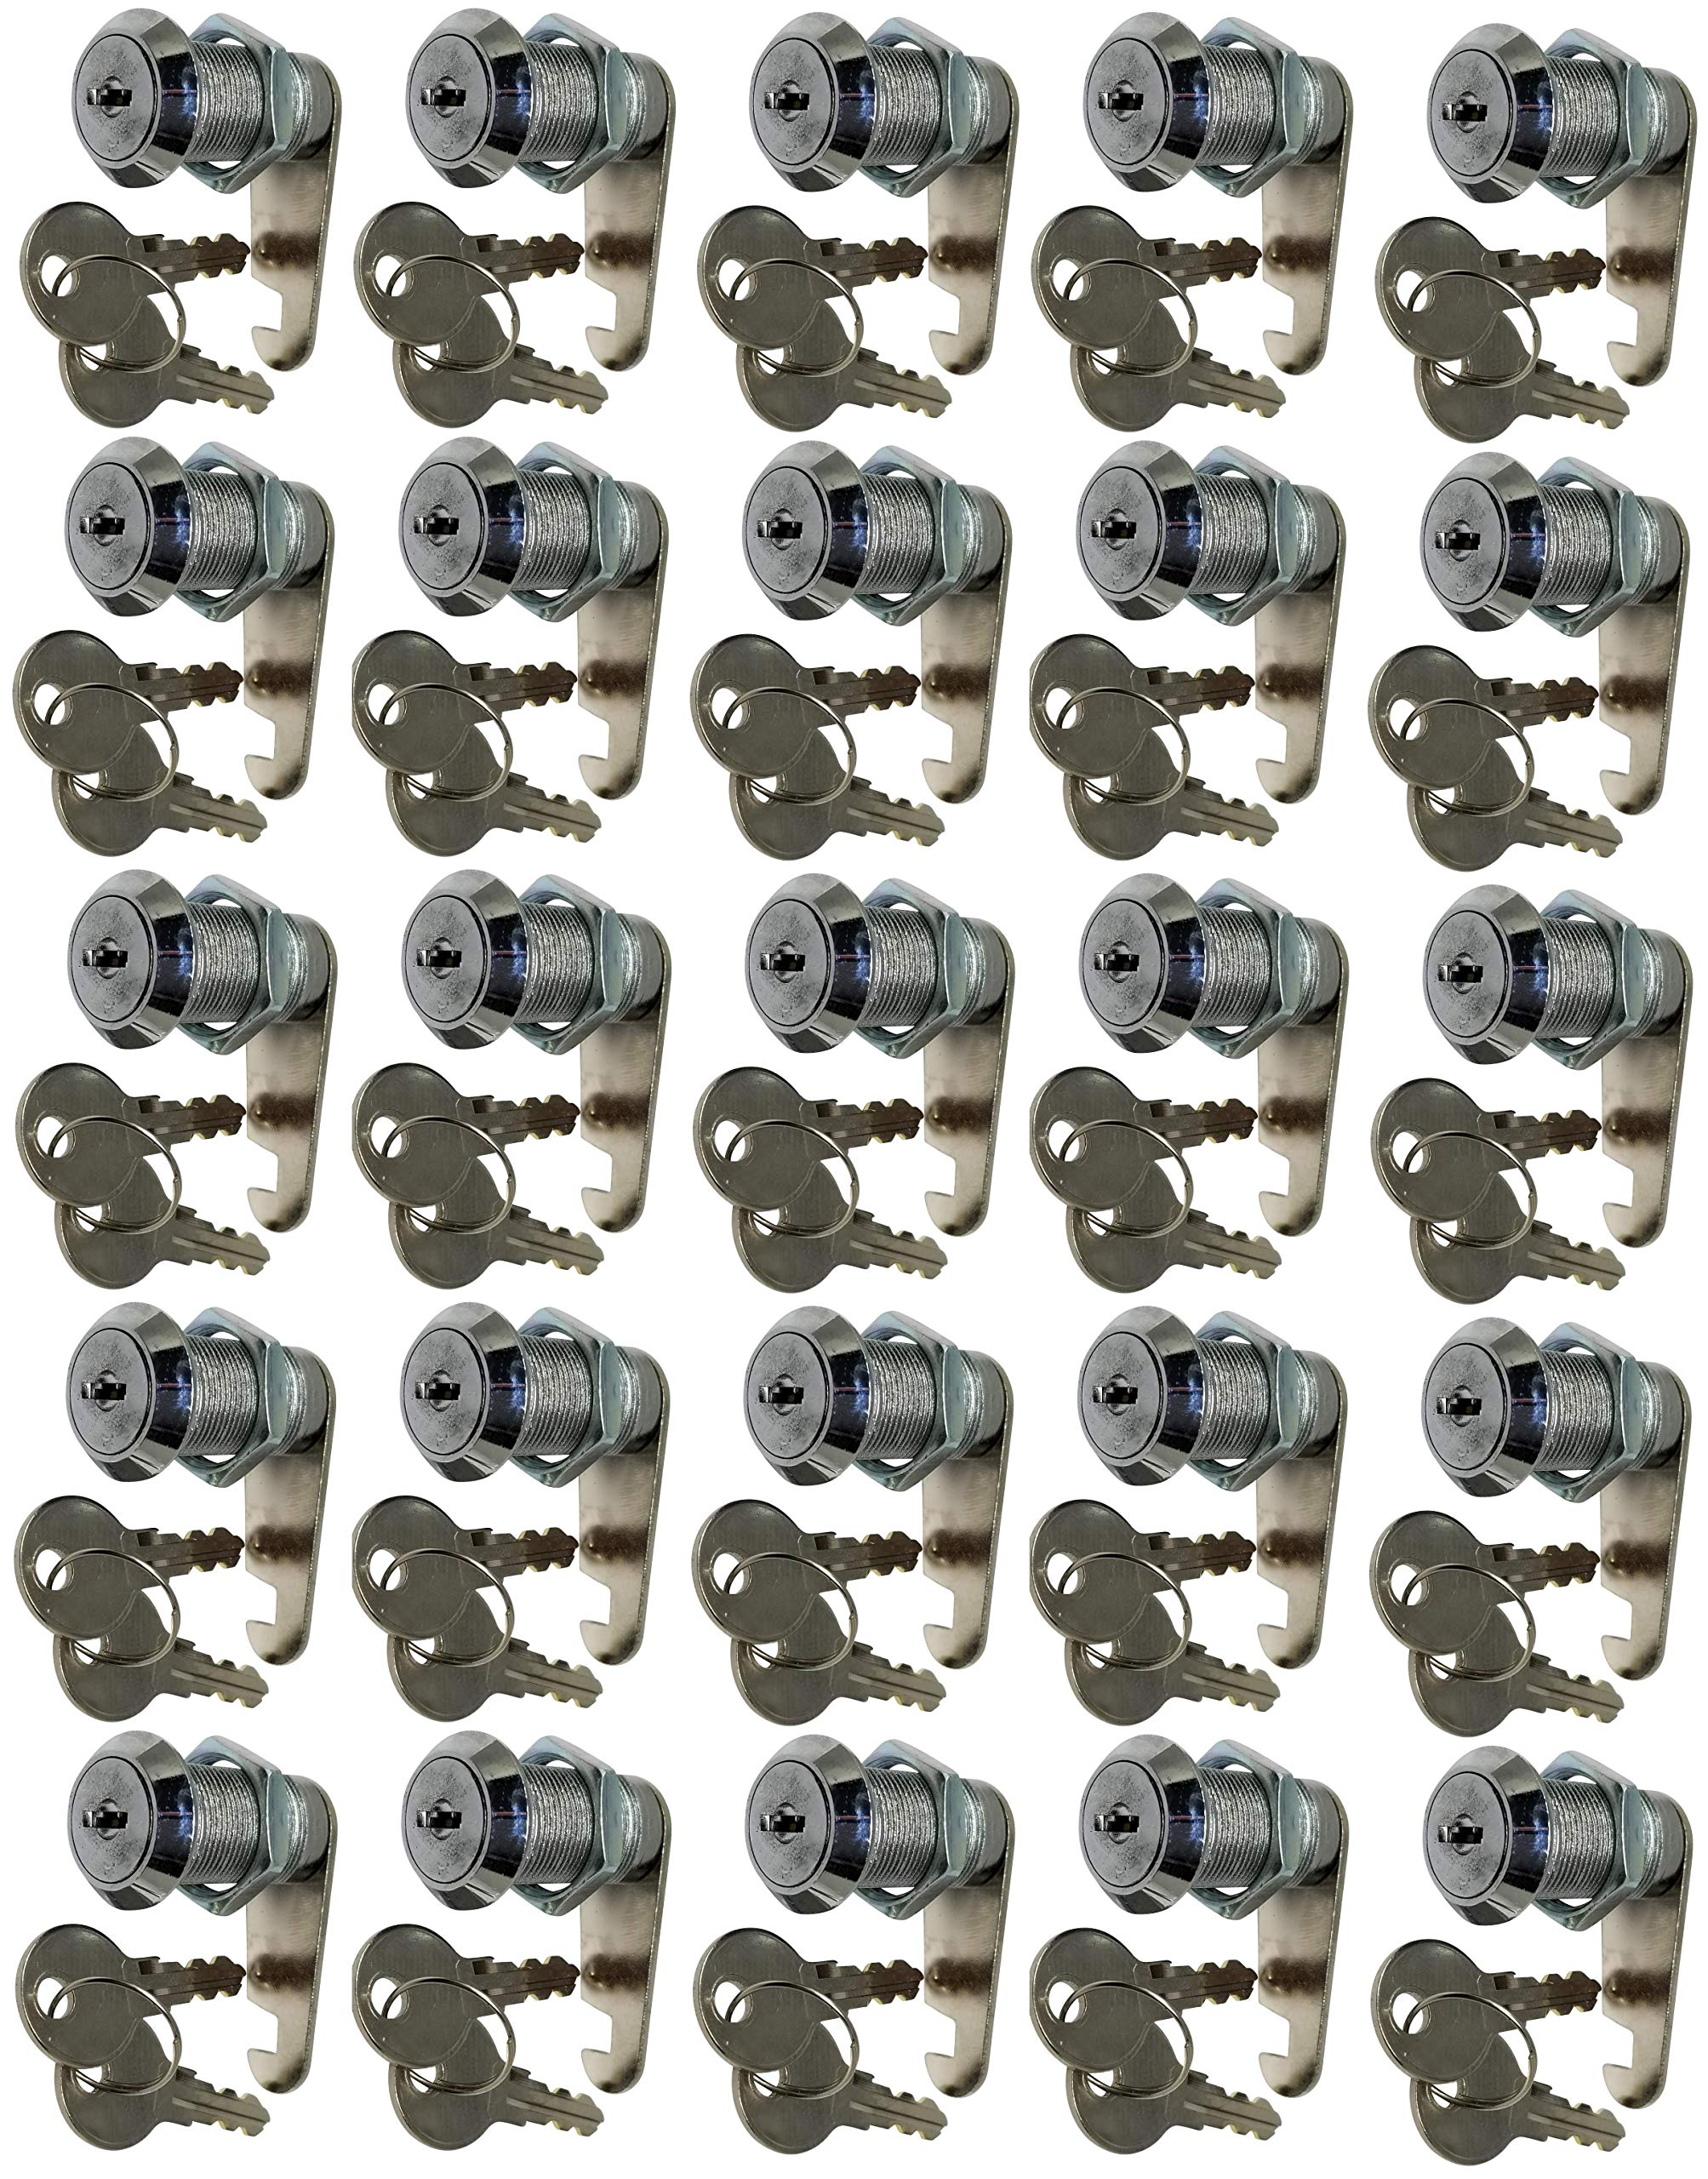 Flat Key Cam Locks. Great for RV Storage Cabinets Chrome Finish, Keyed Alike (1-1/8'', Pack of 25) by Products Quad (Image #1)